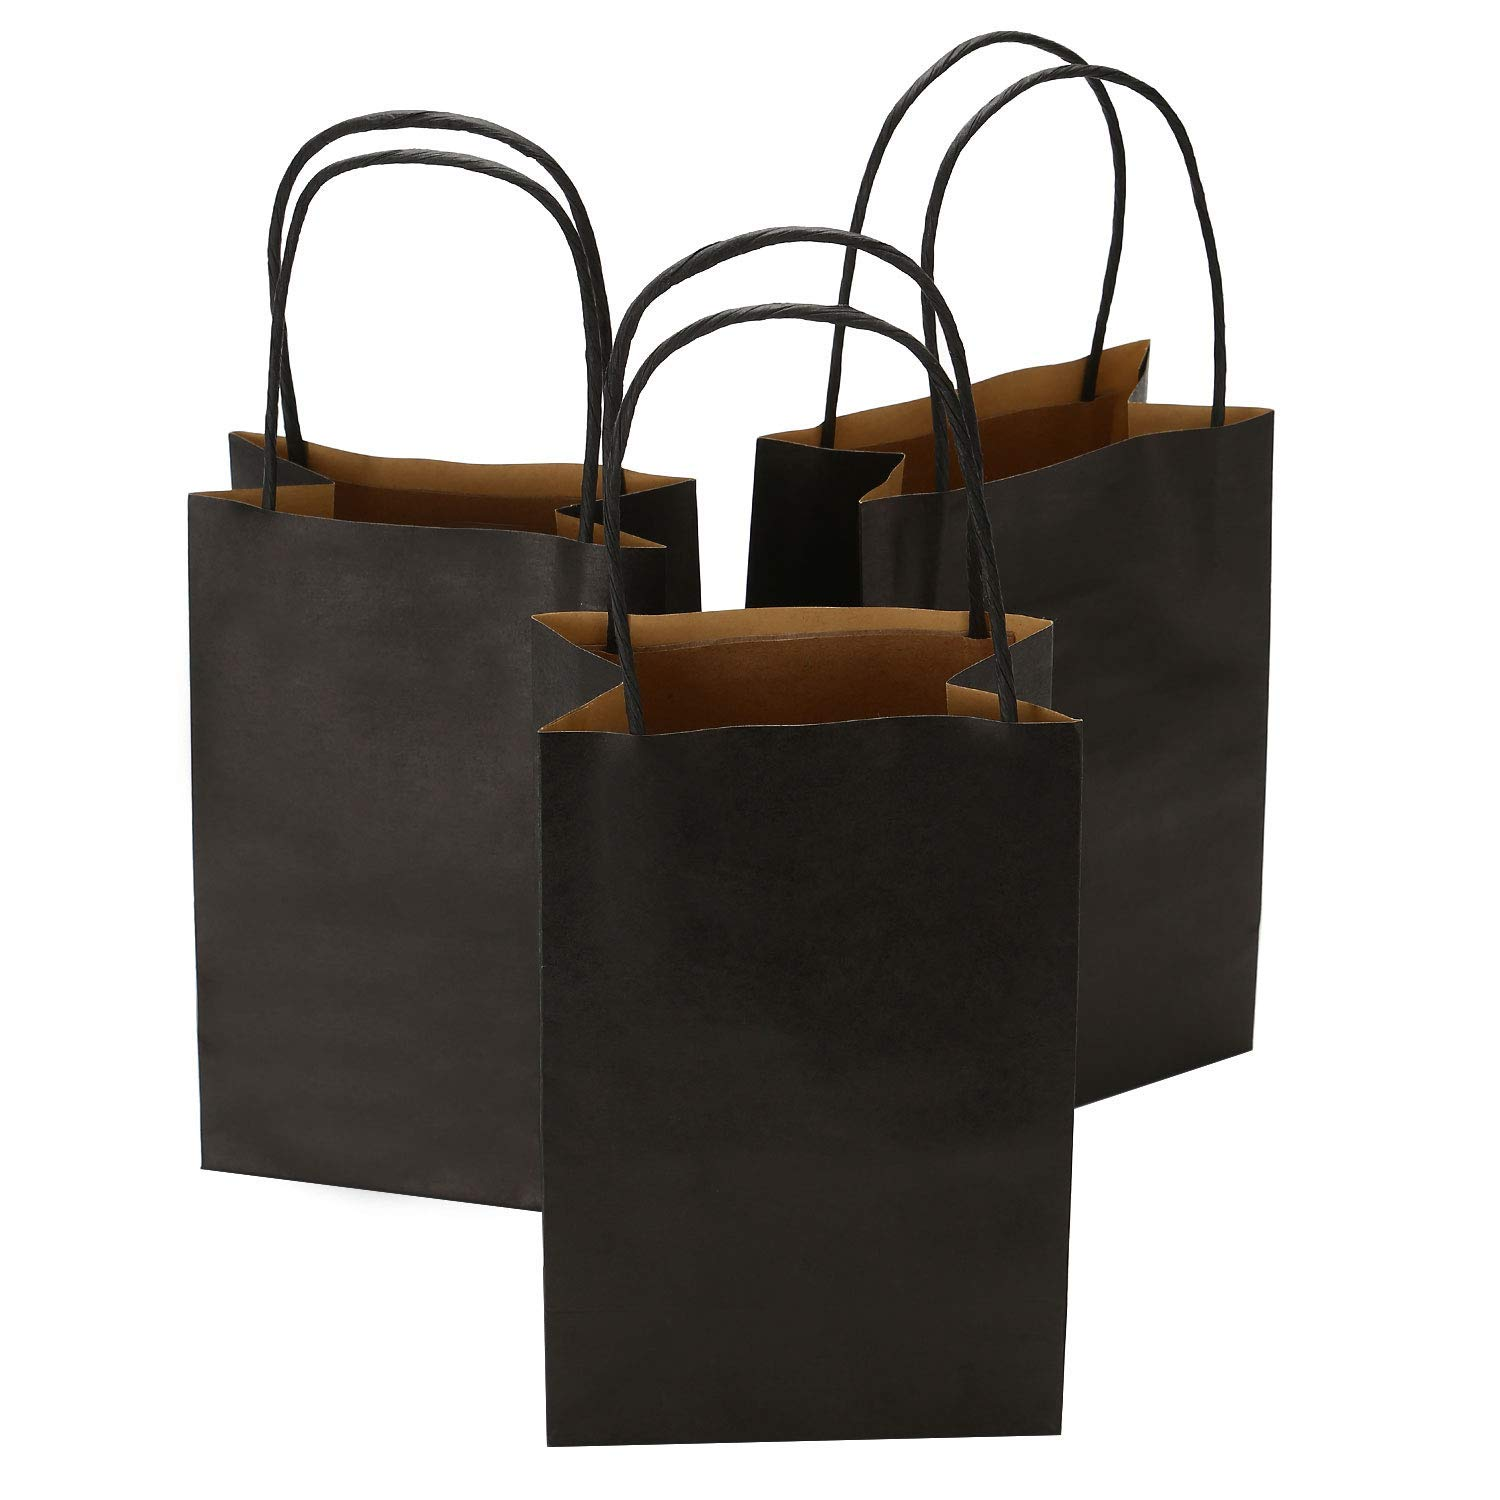 1fff228fdf3 Get Quotations · Road 5.25 x 3.25 x 8 Inches 100pcs Black Kraft Paper Bags  with Handle